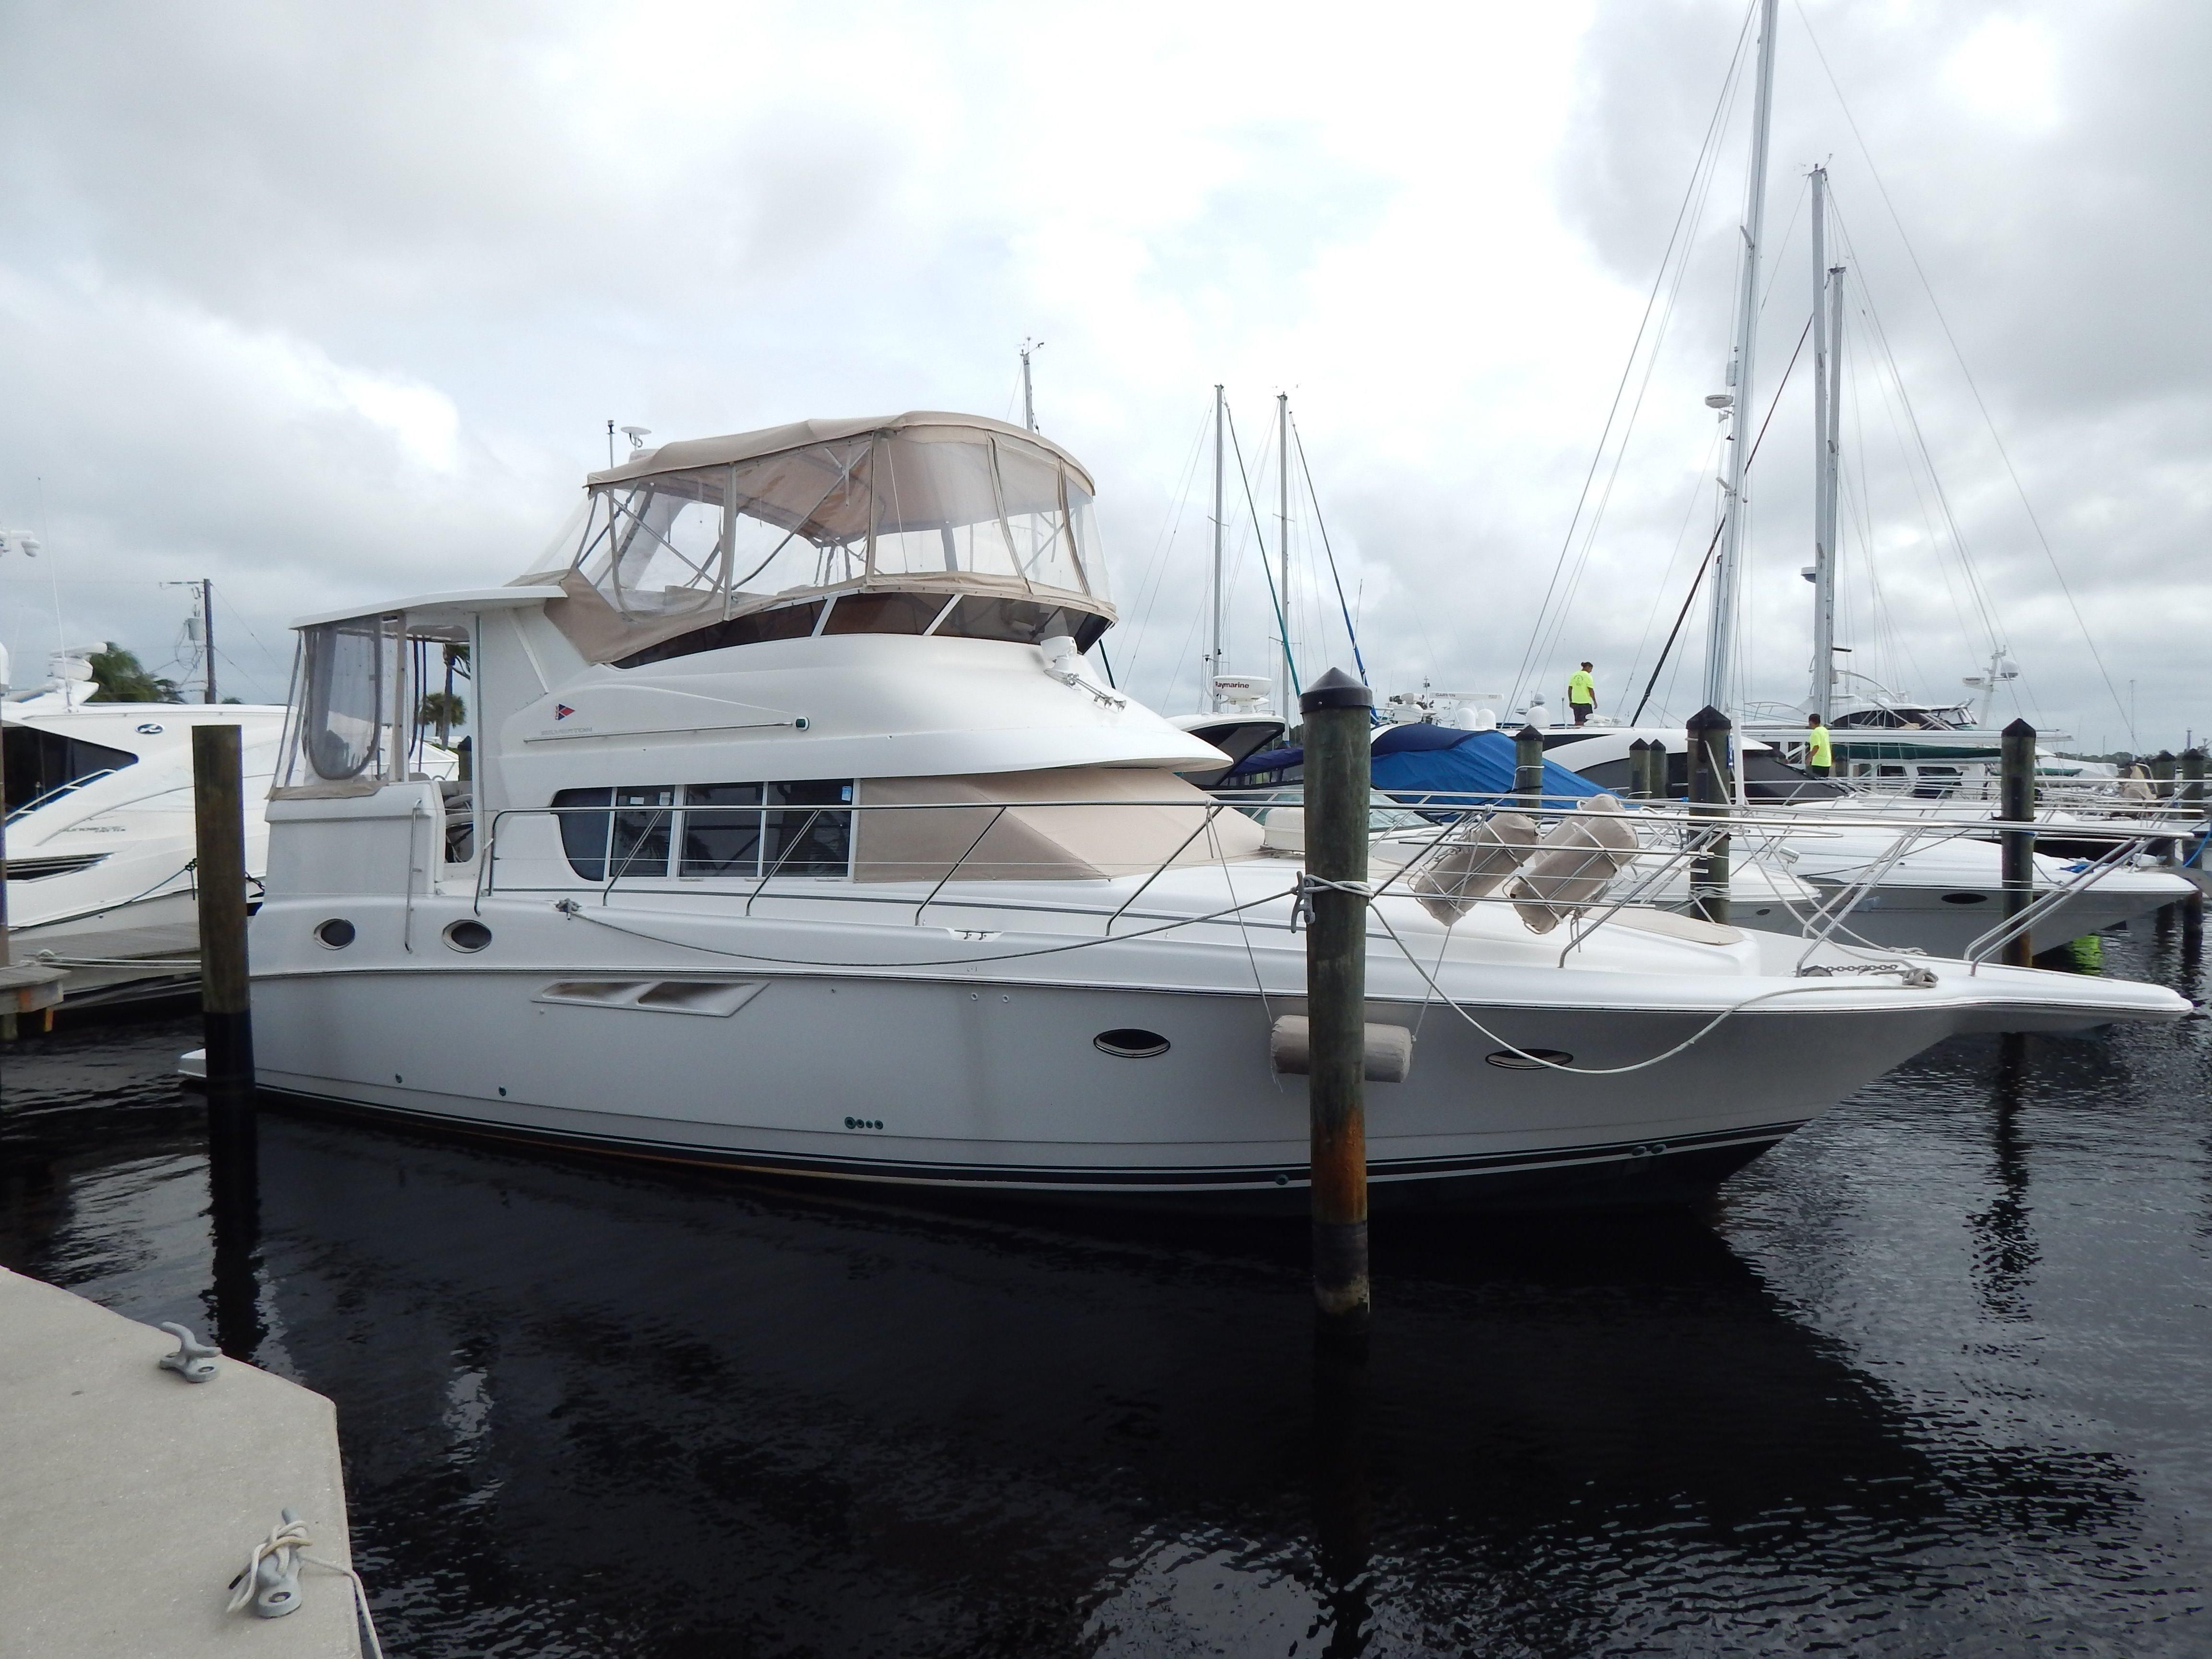 2000 silverton 422 motor yacht power boat for sale www for Motor yachts for sale in florida